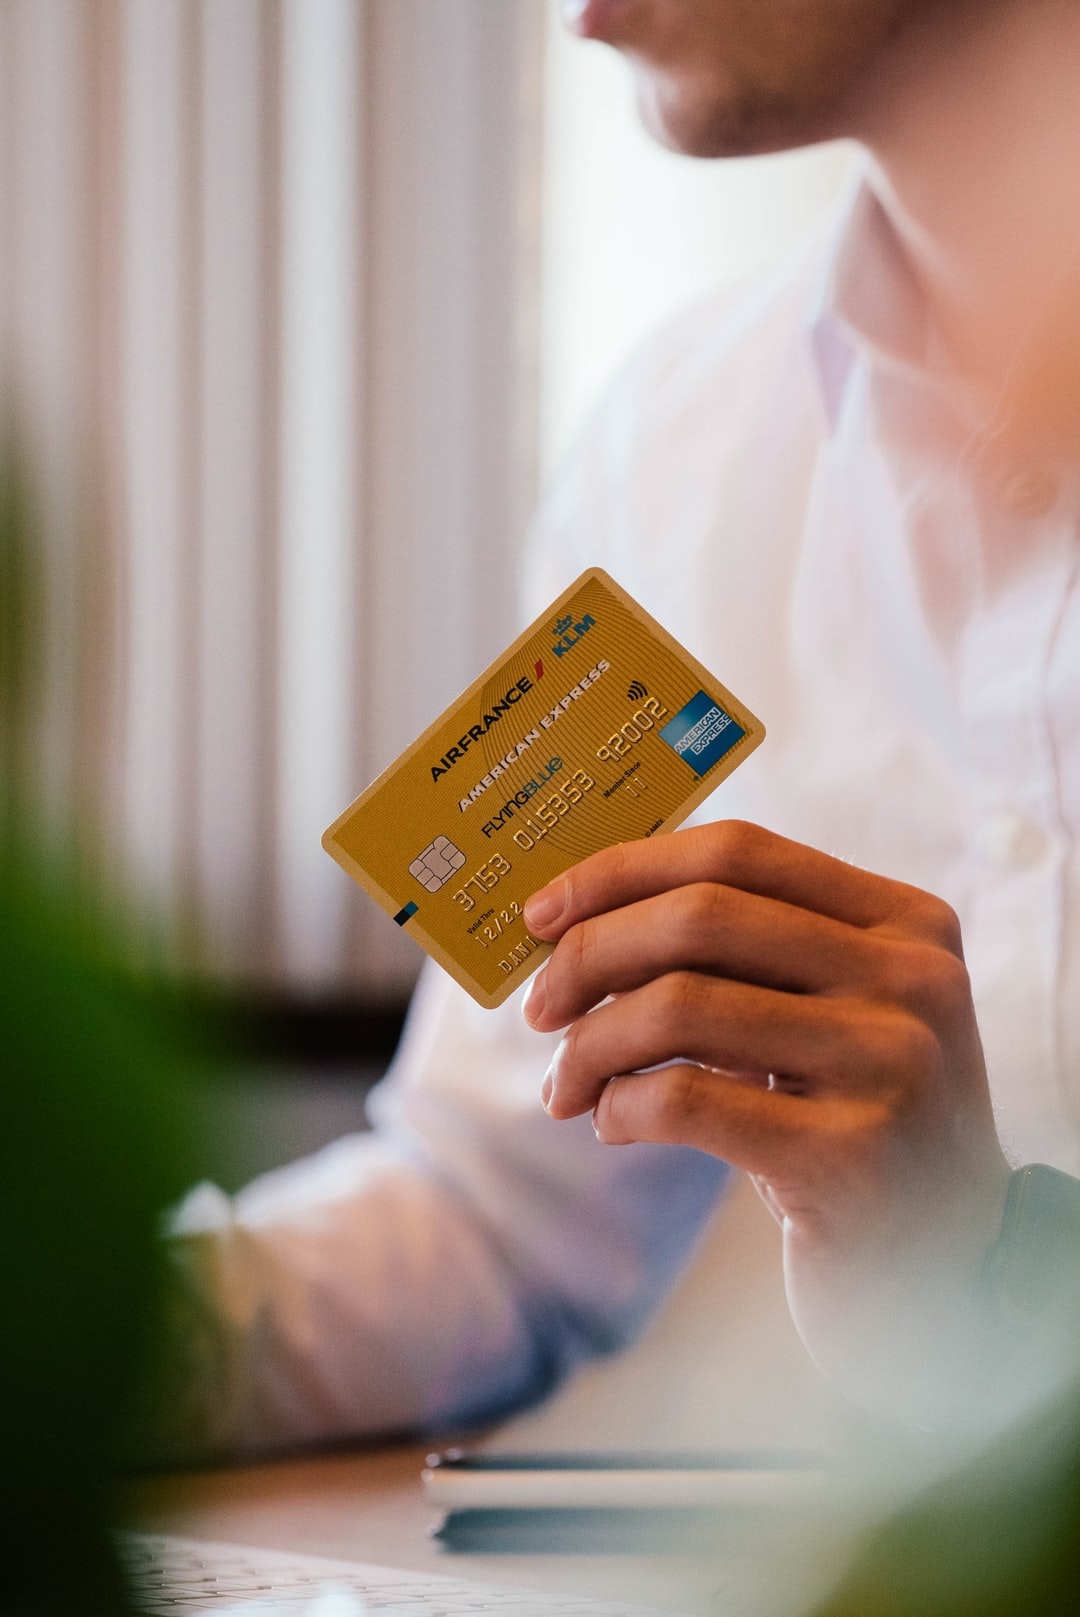 How to handle credit card chargebacks: A guide for small businesses